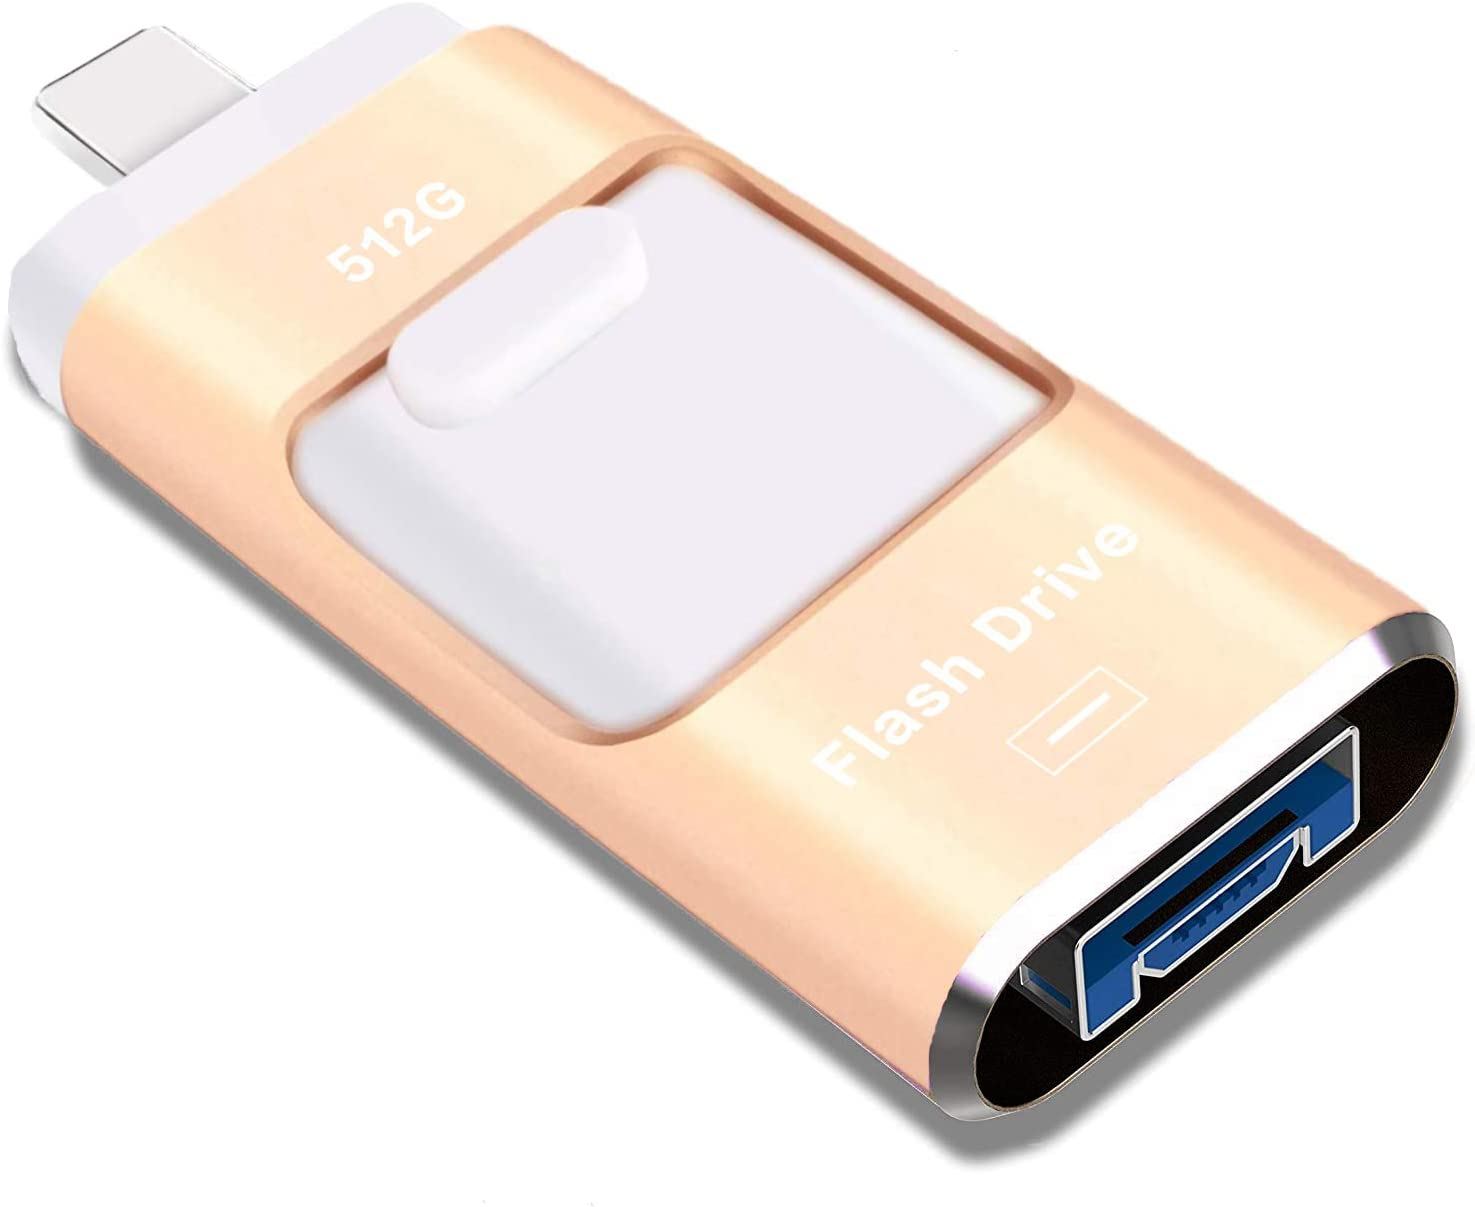 USB Flash Drive 512GB, STTARLUK Photo Stick USB 3.0 Pen Drive Compatible for iPhone/iPad External Storage Memory Stick Compatible with iPad/iPod/Mac/Android/PC (512G Gold)